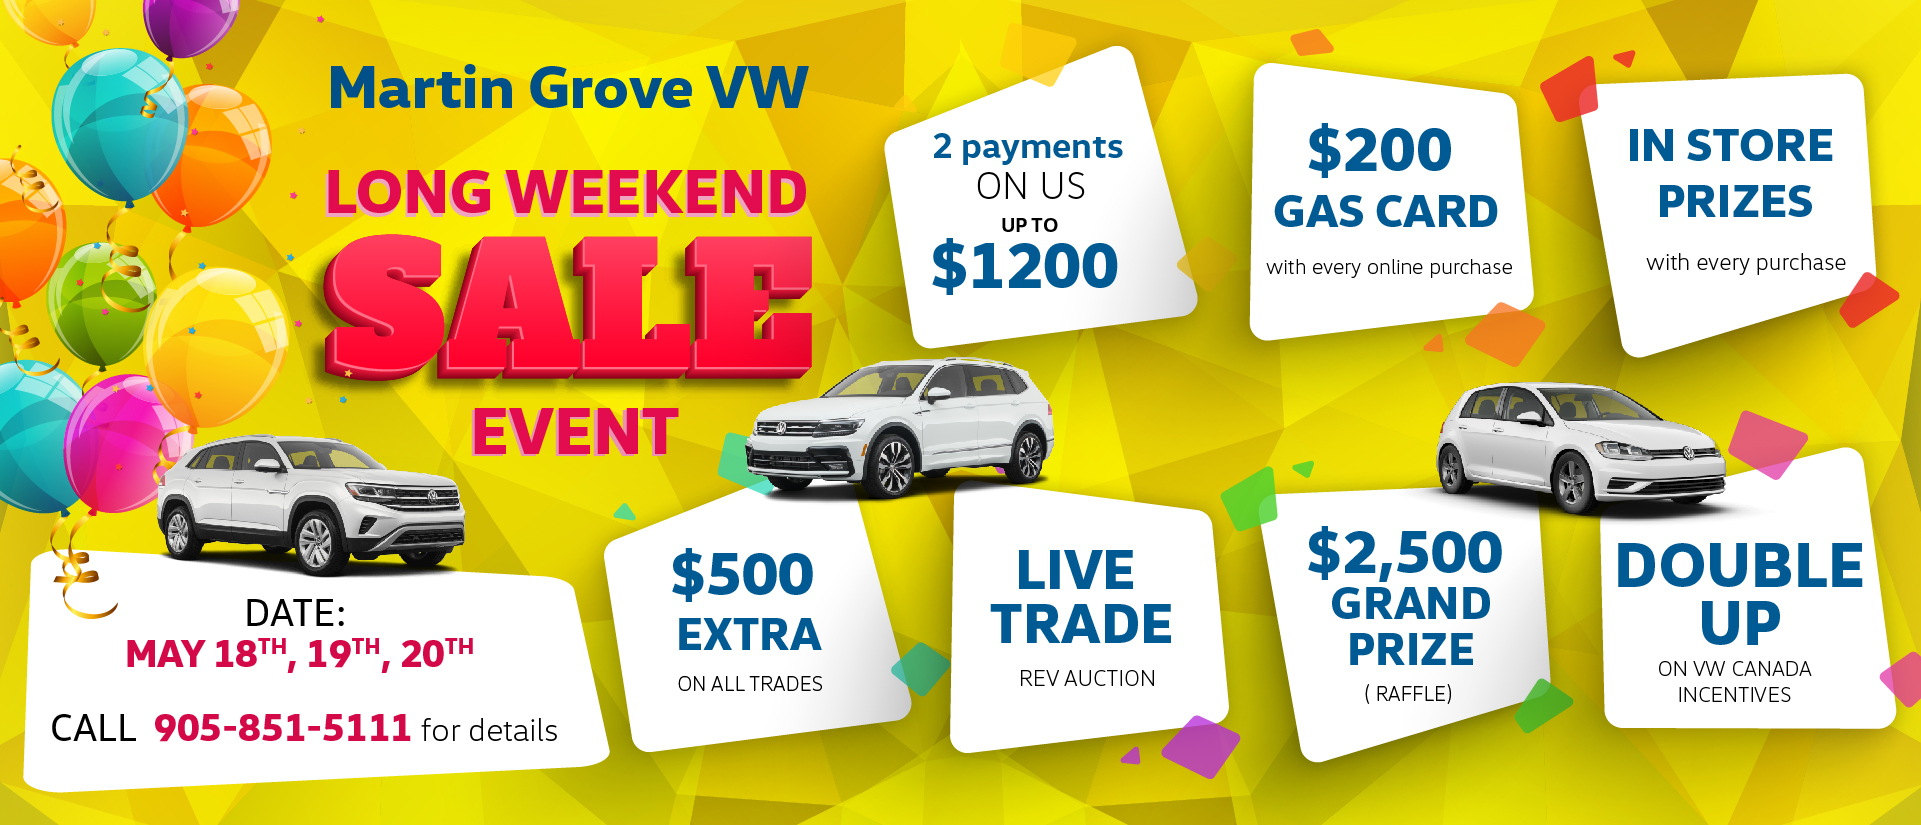 608a 21 Martin Grove Vw Private Sale Event 03